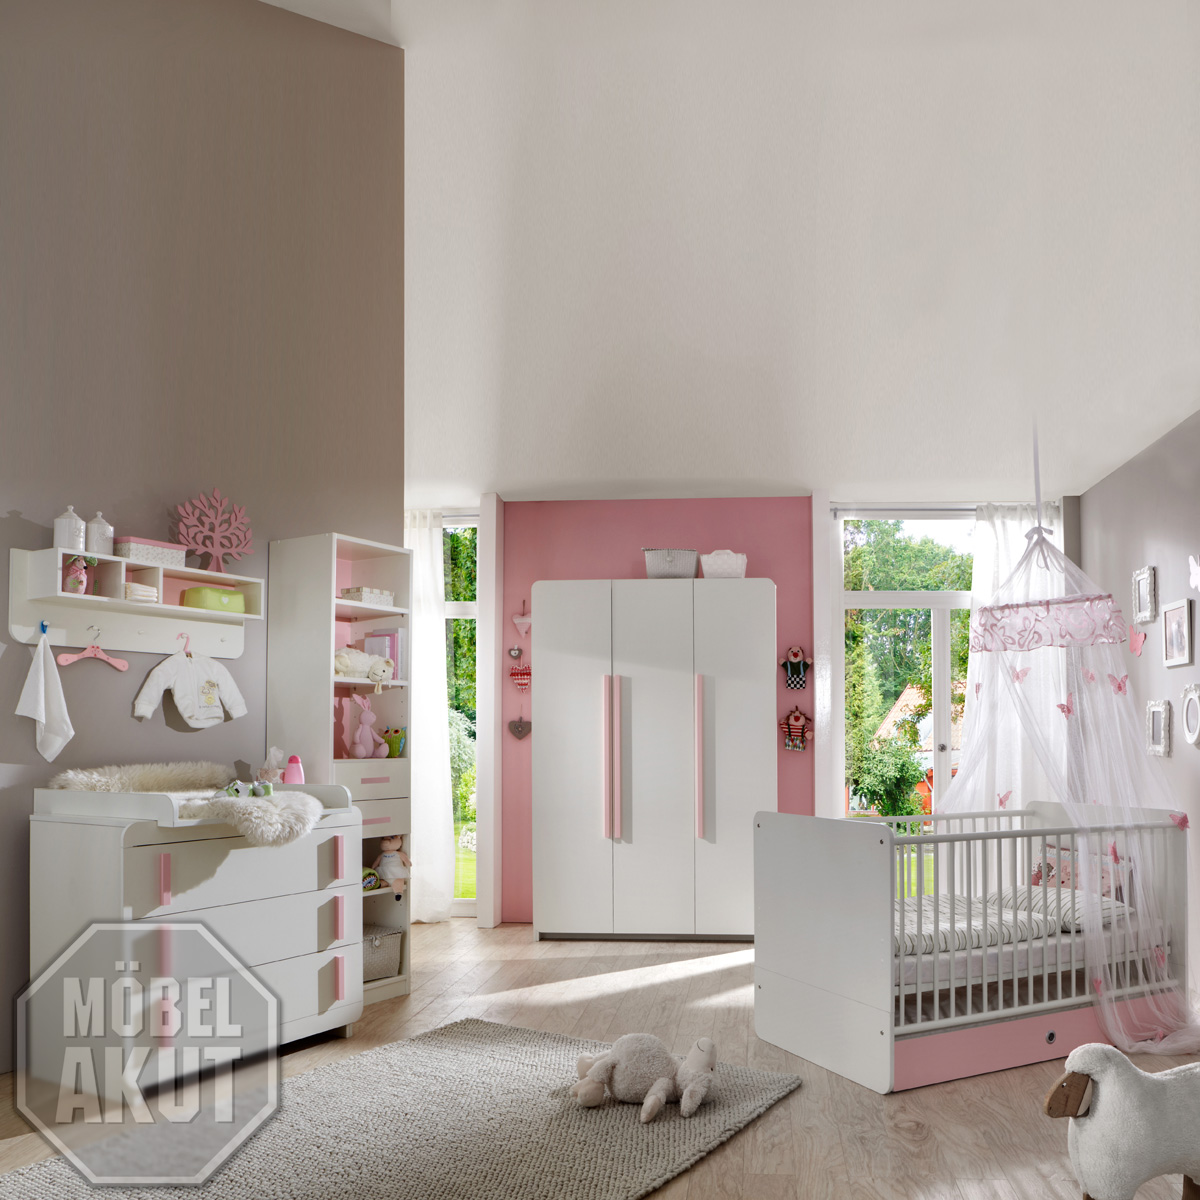 babyzimmer set maja 4 teilig baby schrank bett wei ros ebay. Black Bedroom Furniture Sets. Home Design Ideas